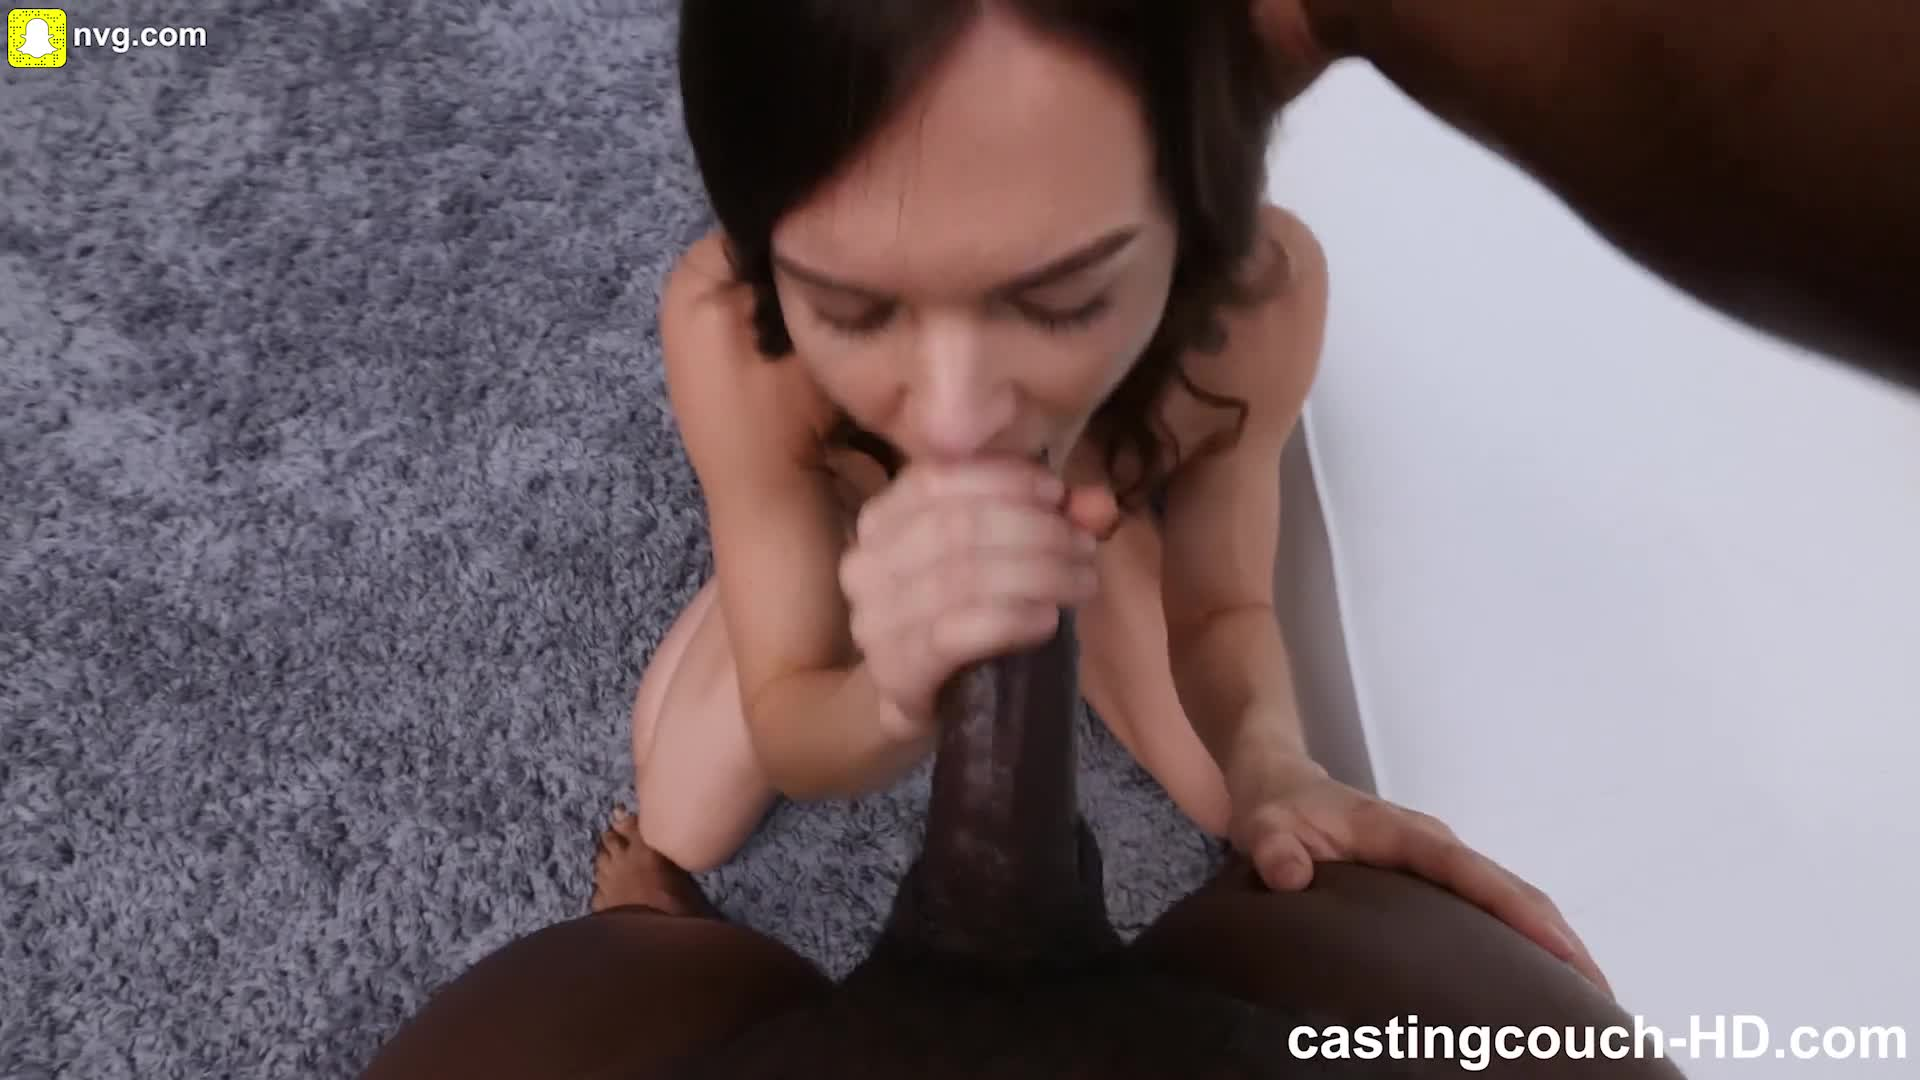 Young Girl Rubbing Her Pussy